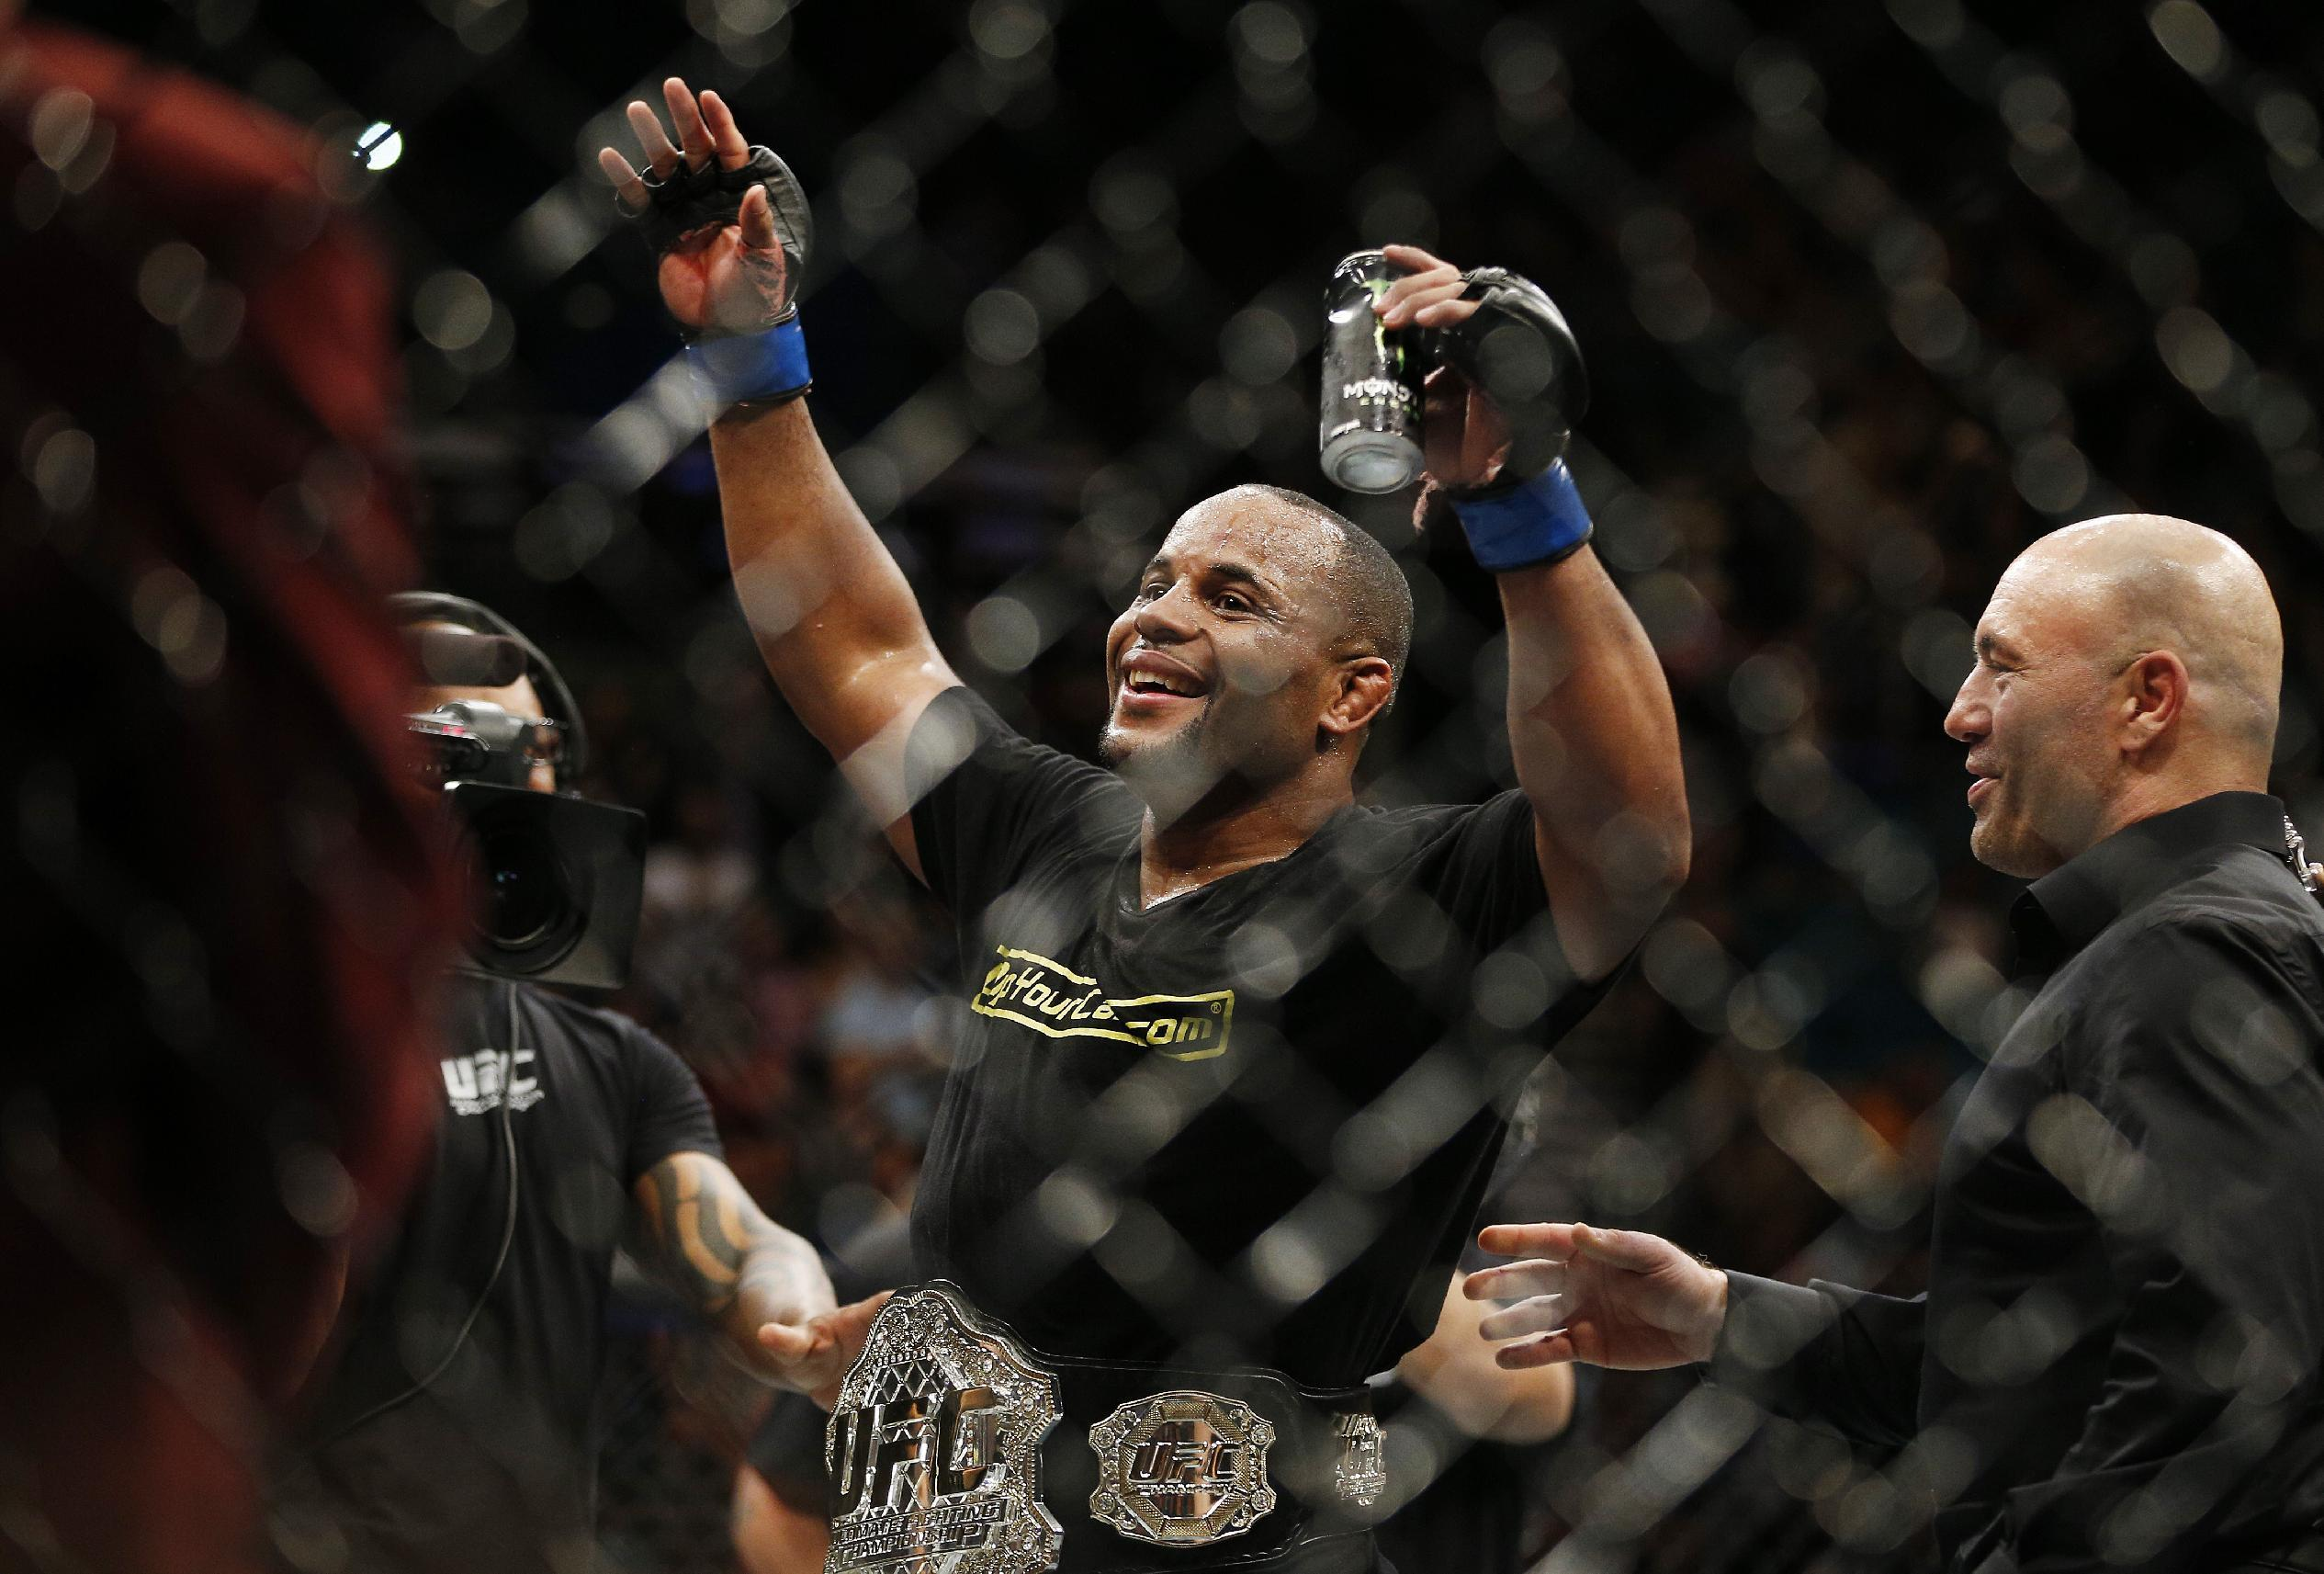 Cormier submits Johnson in 3rd, wins vacant title at UFC 187